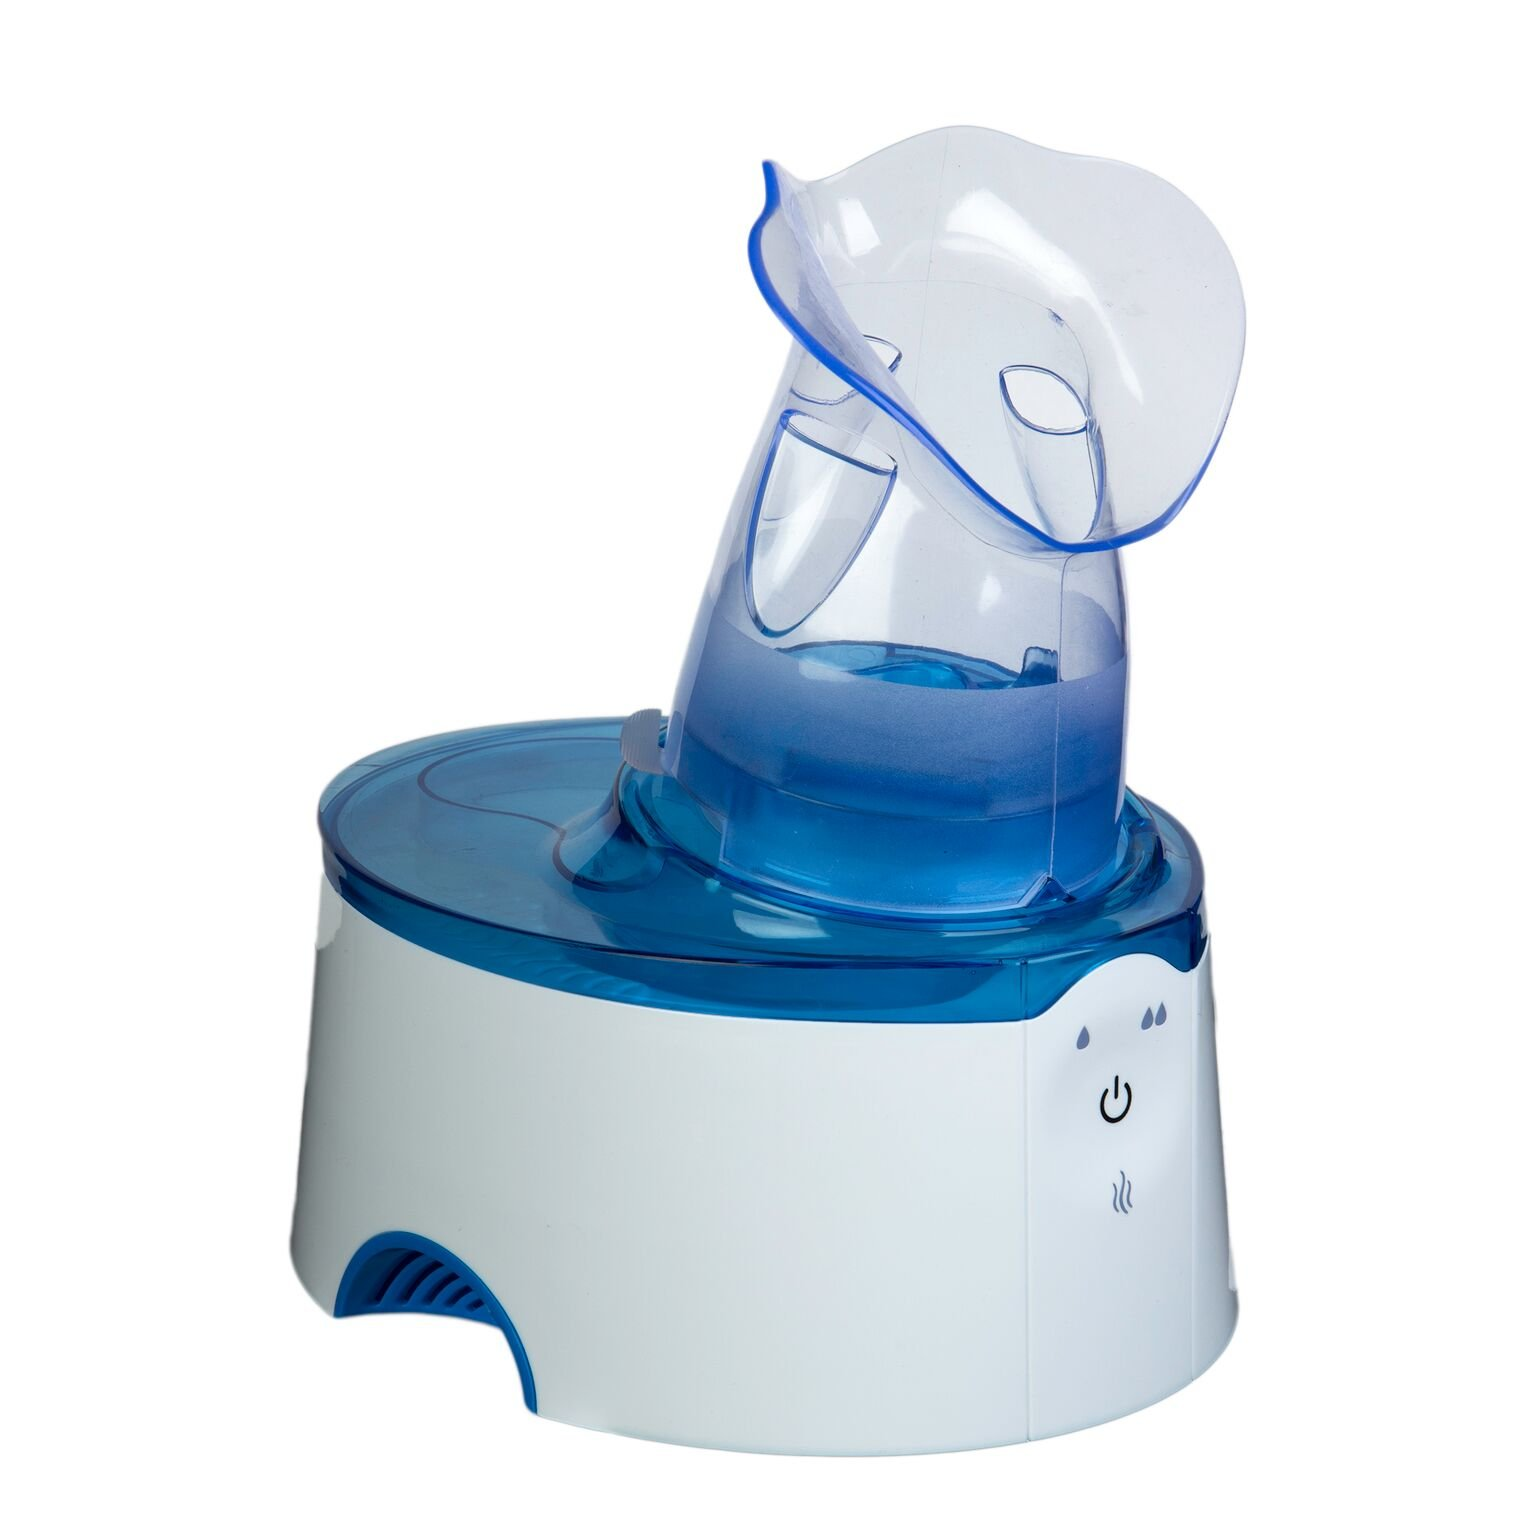 Crane USA Humidifiers - Blue White Personal Steam Inhaler & Warm Mist Humidifier - Adjustable Hot Mist Vaporizer Automatic Shut-off Sinus Relief for breathing problems Asthma Home Bedroom Kids Babies